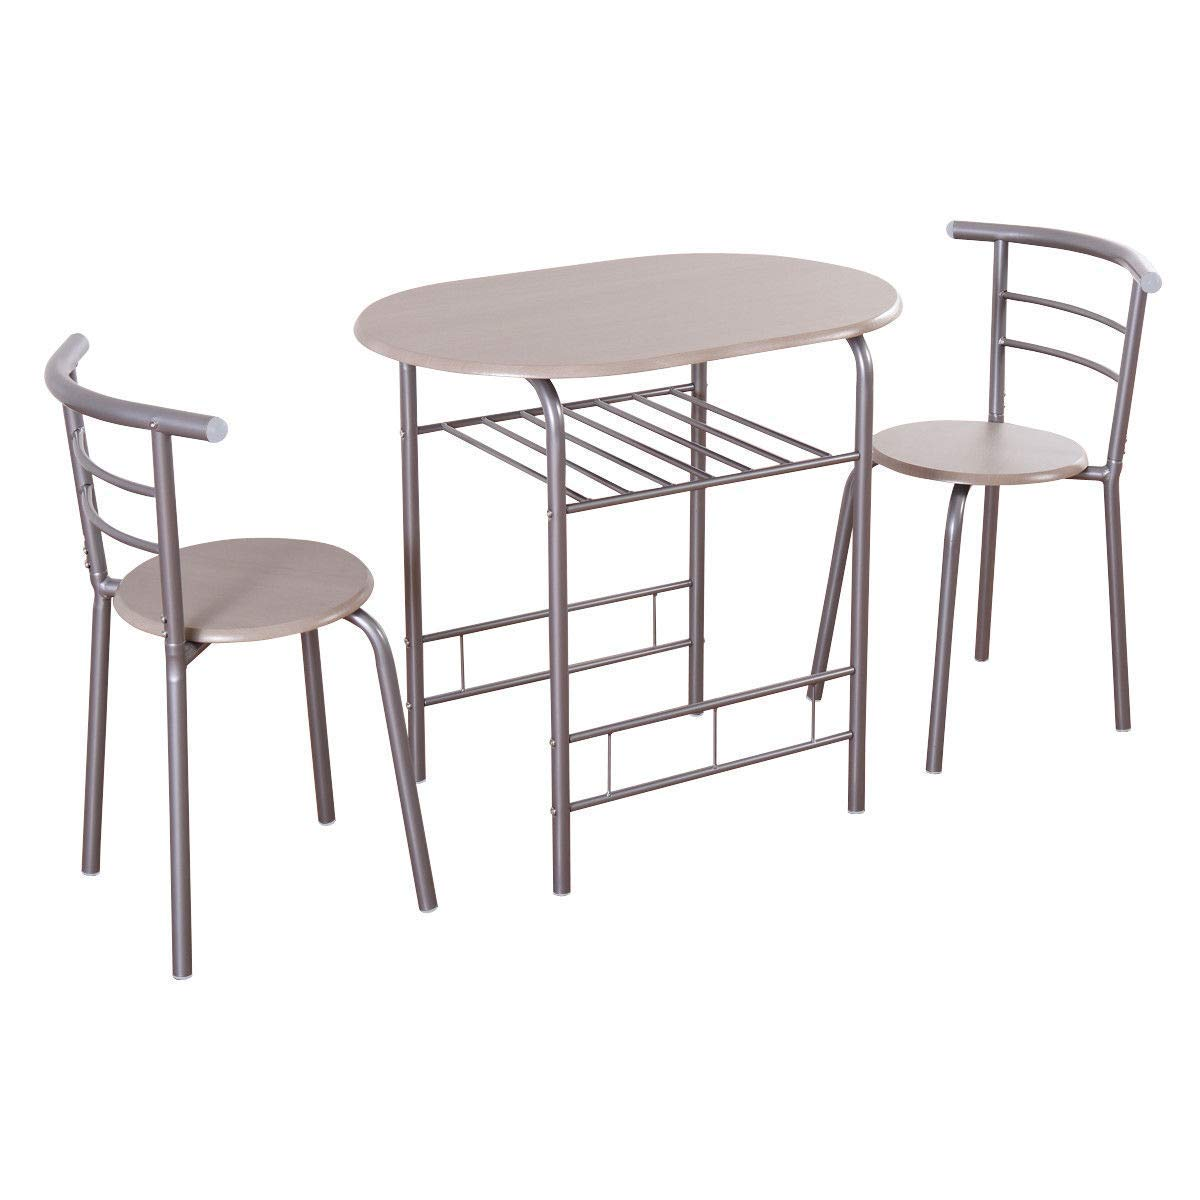 Giantex 3 Piece Dining Set Compact 2 Chairs and Table Set with Metal Frame and Shelf Storage Bistro Pub Breakfast Space Saving for Apartment and Kitchen (Beech) HW54057